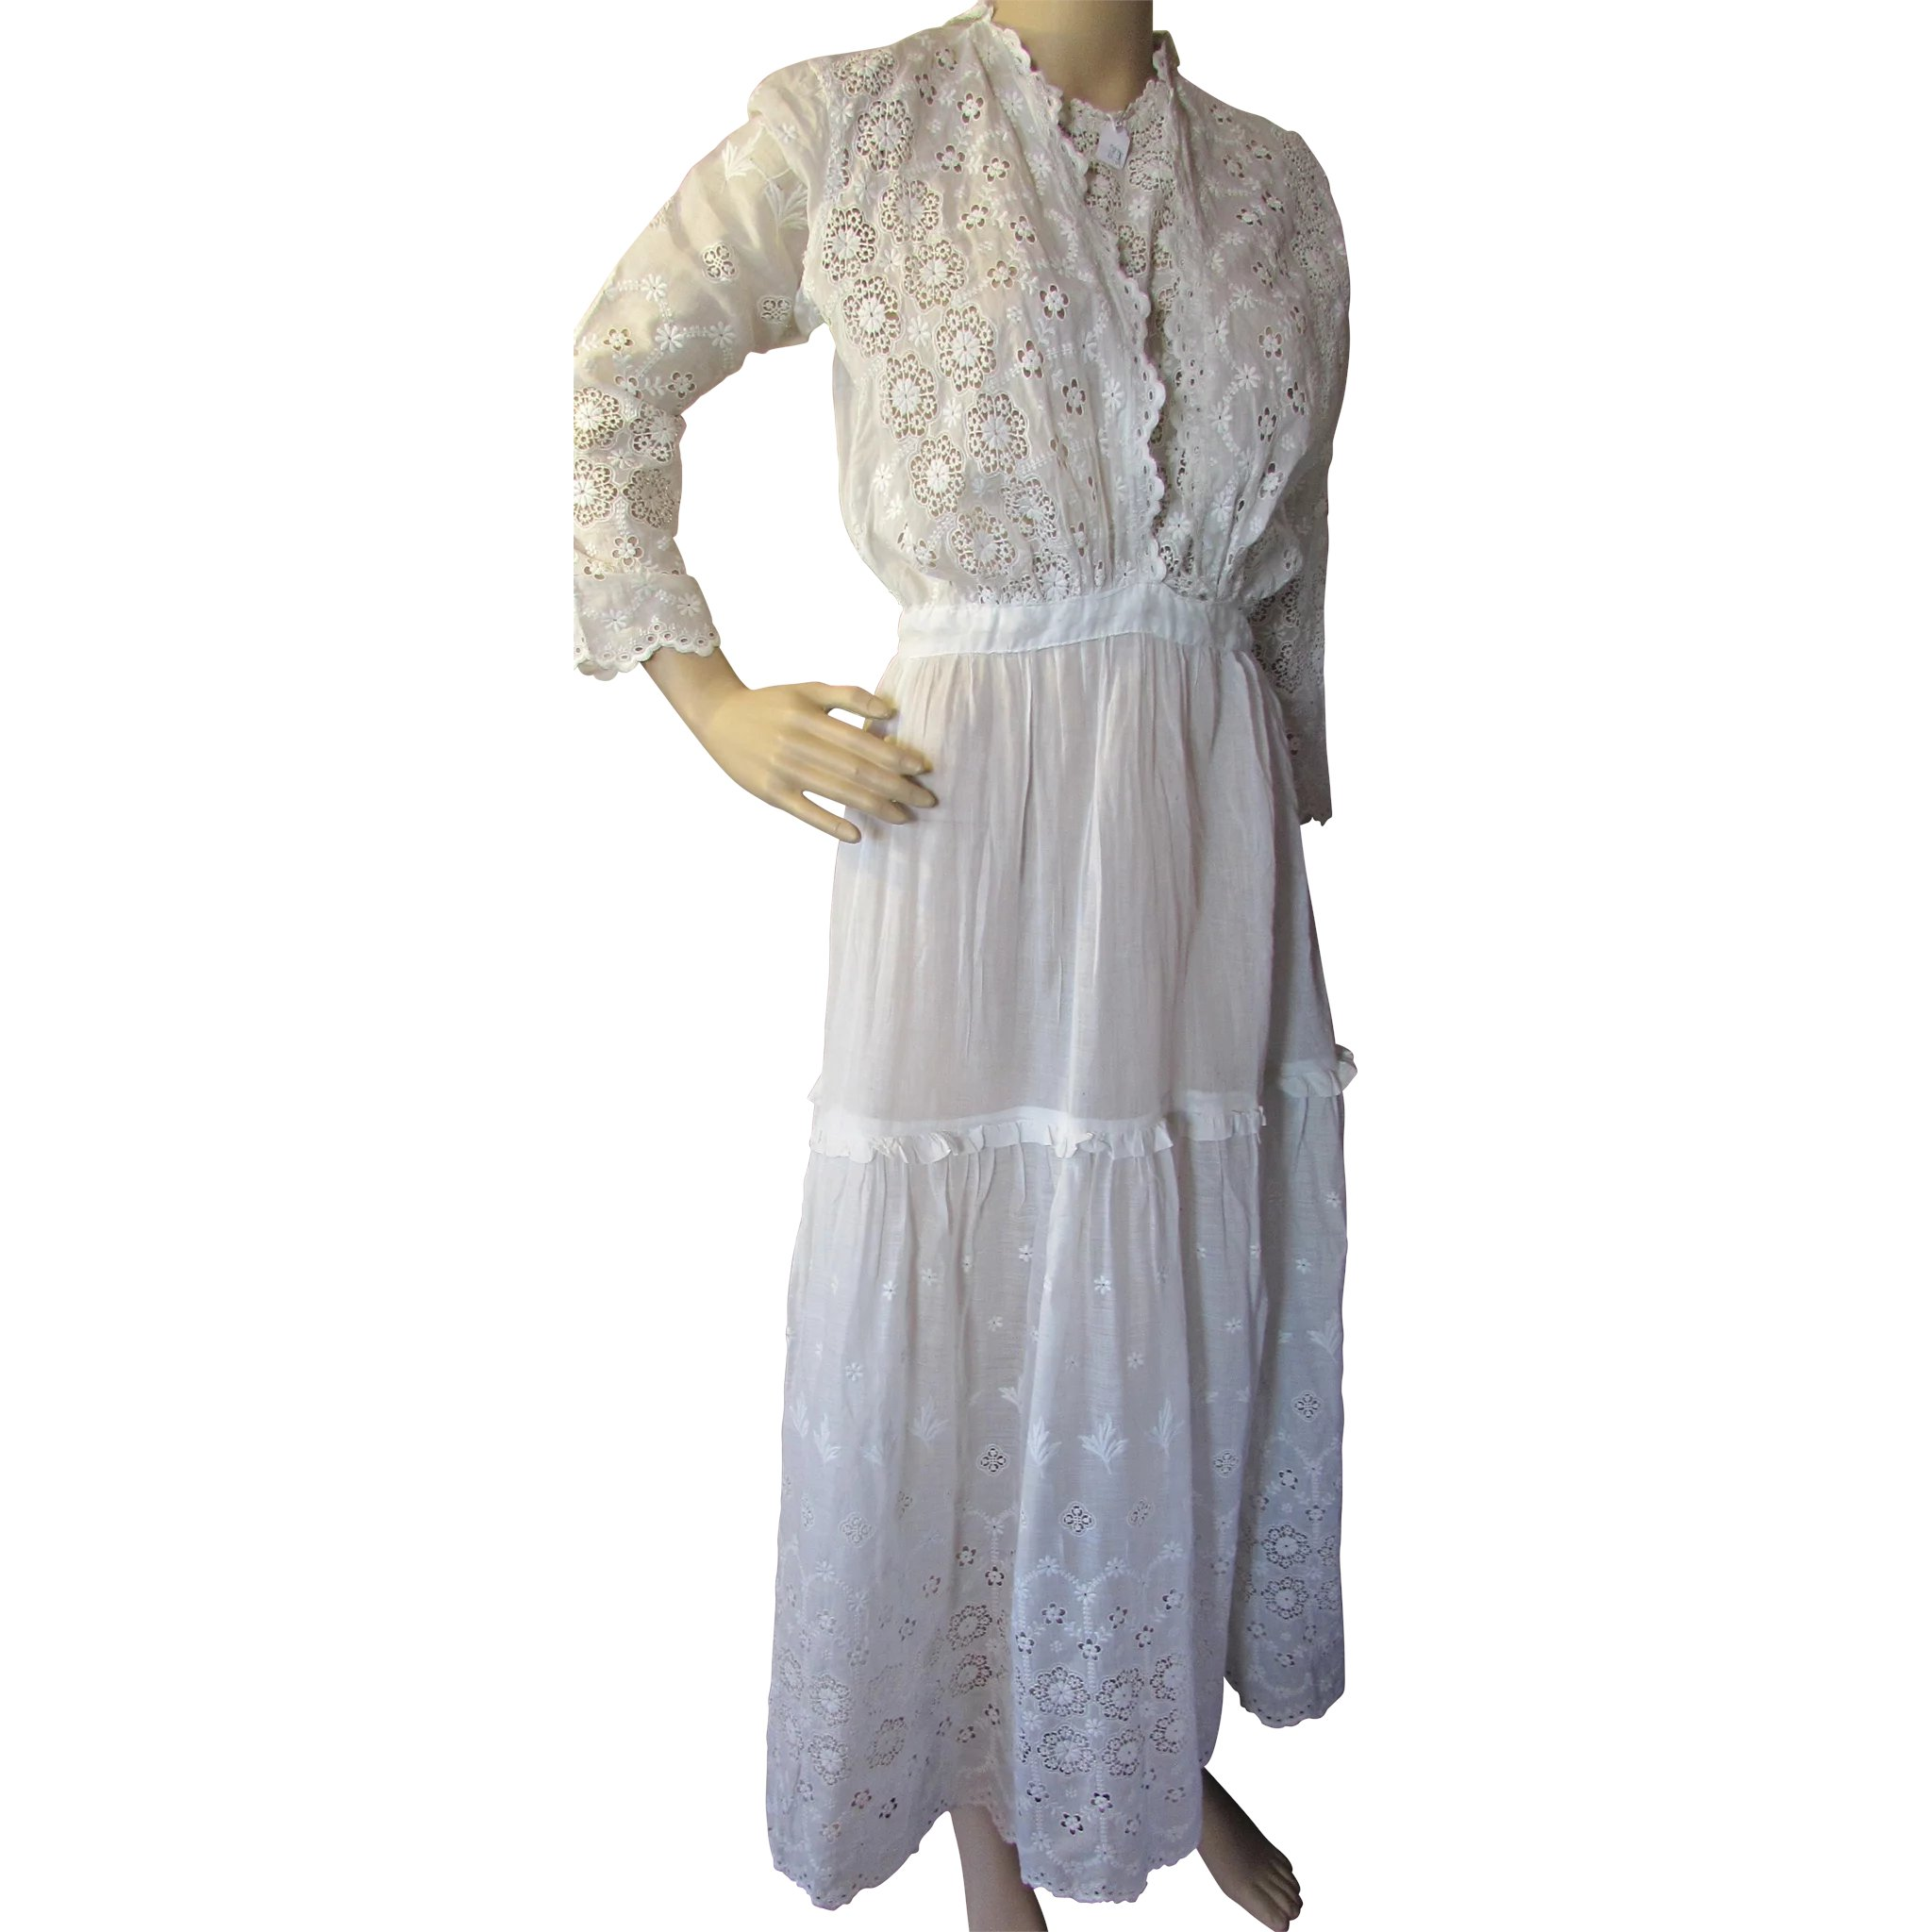 f6f50204f6a Edwardian Gibson Girl White Summer Dress with Intricate Embroidery    Maude s Vintage Ware